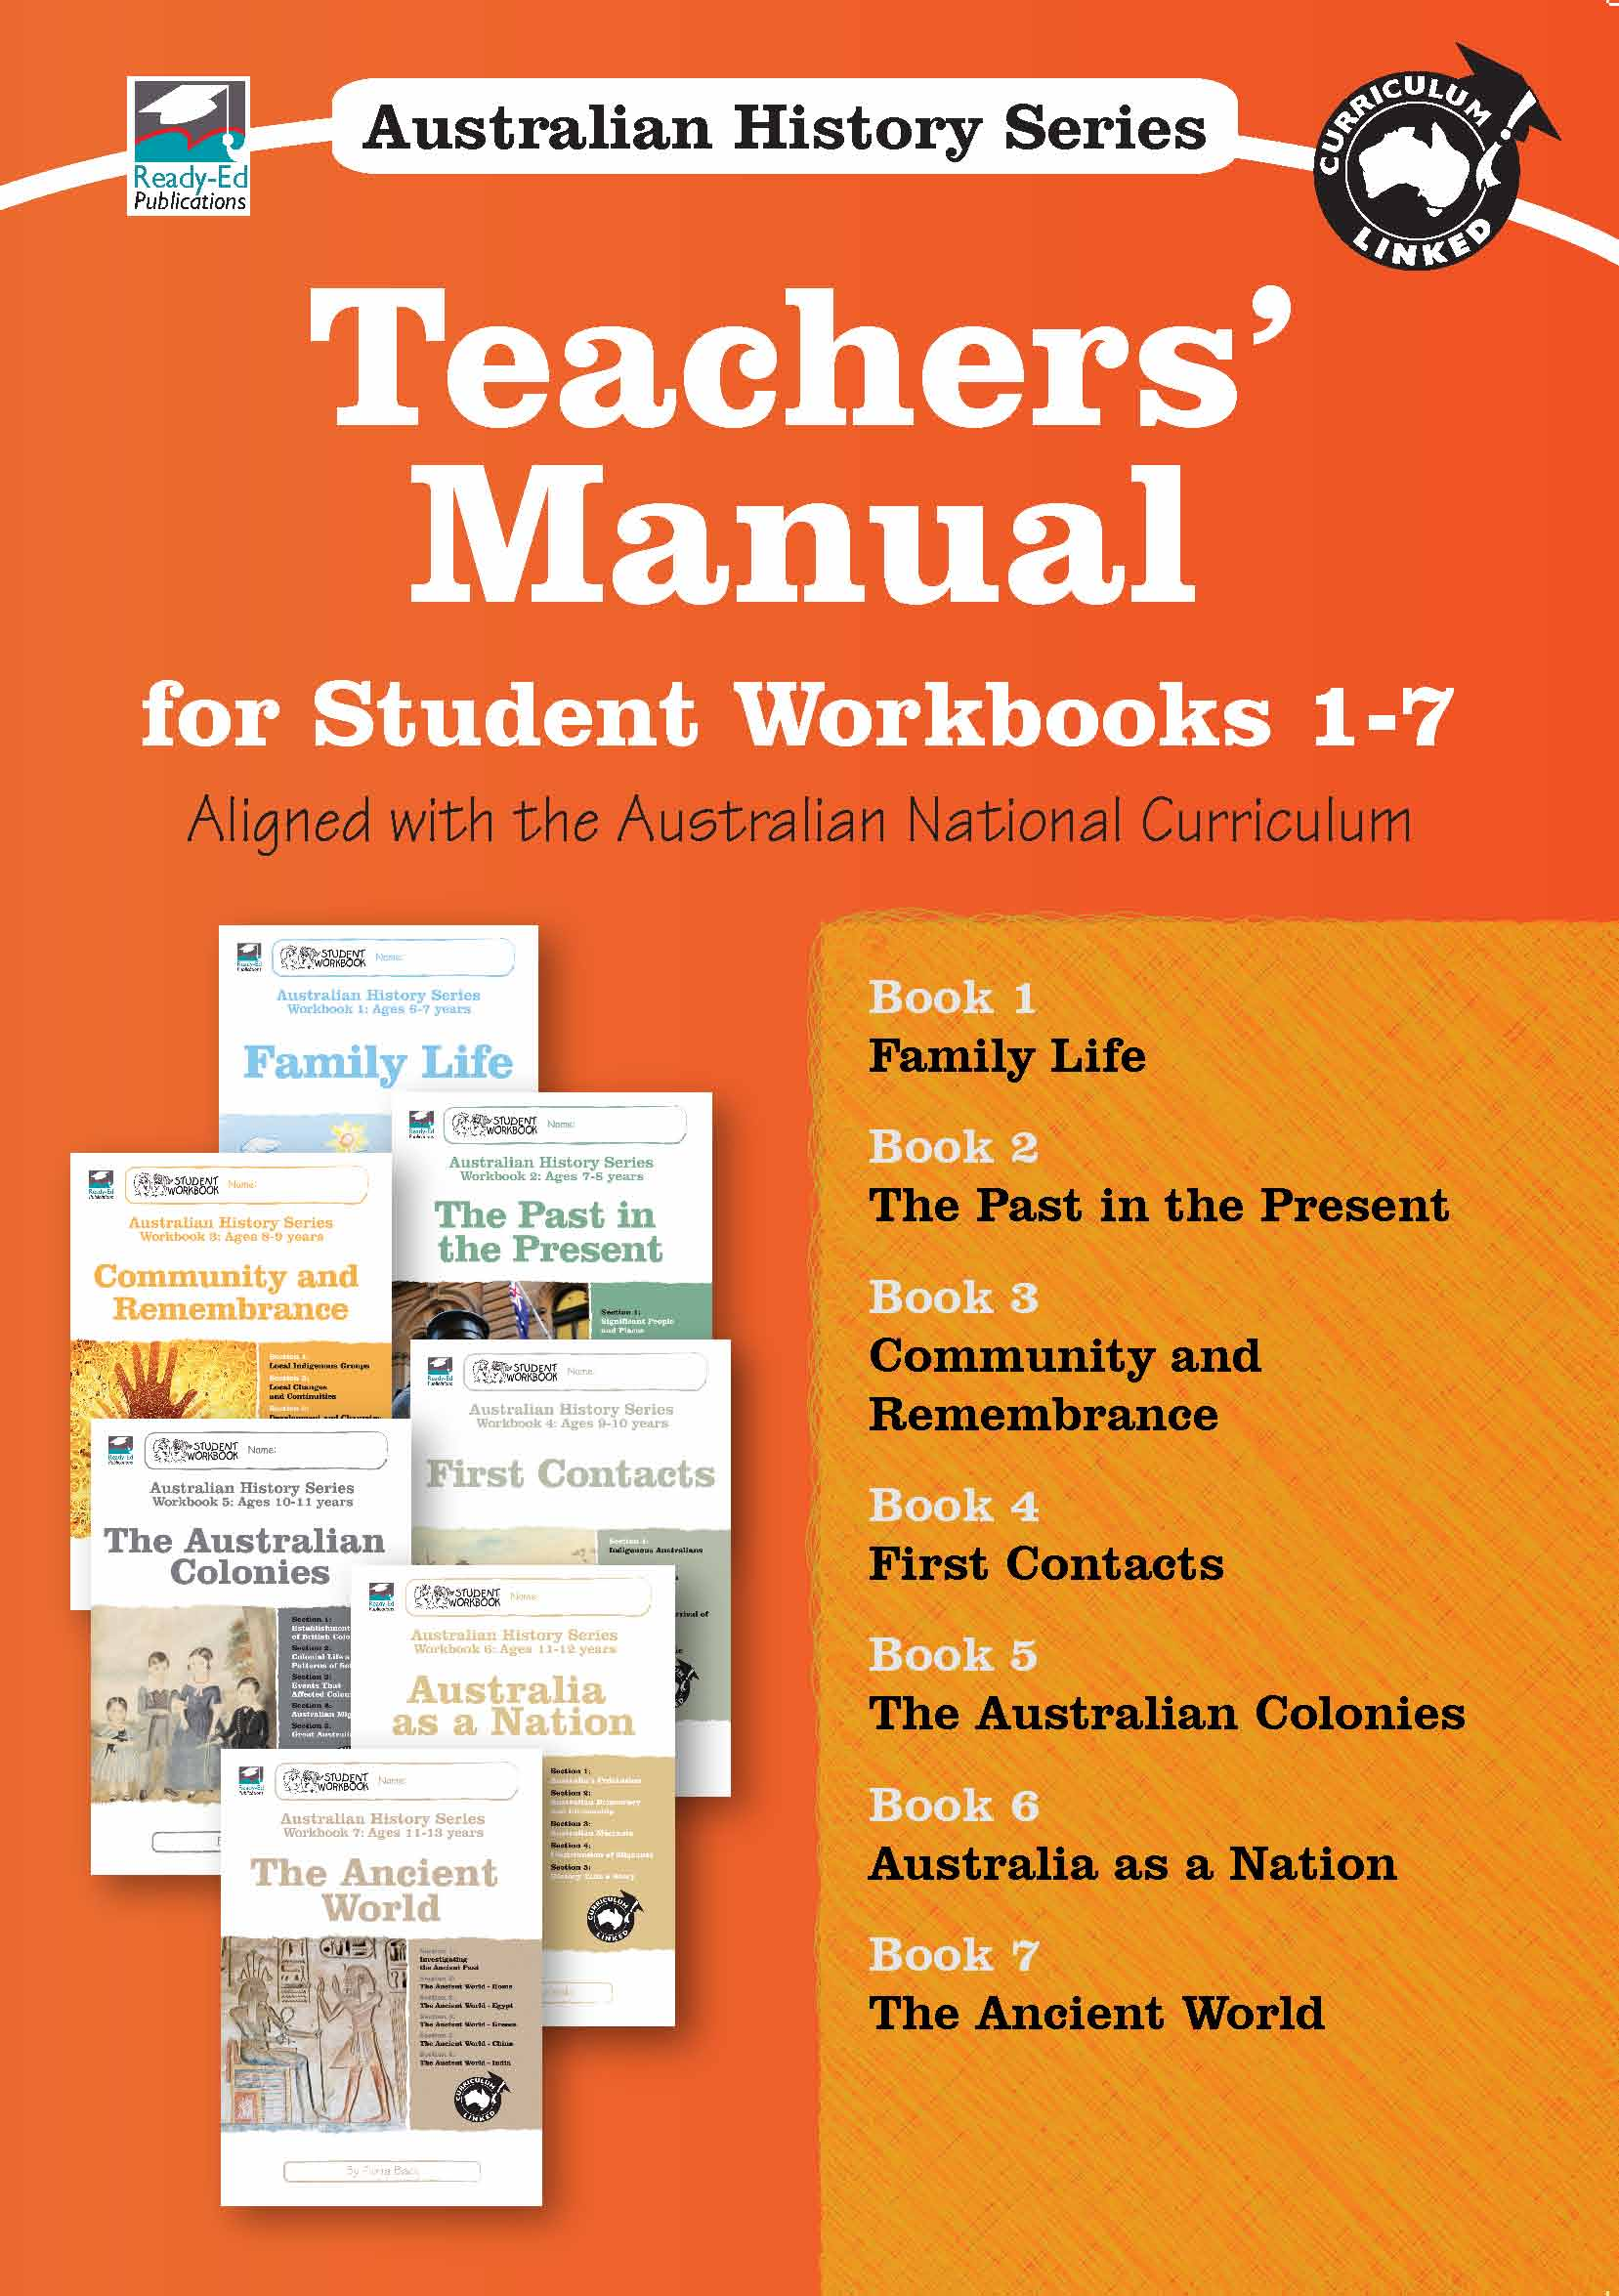 Australian History Series Teachers Manual